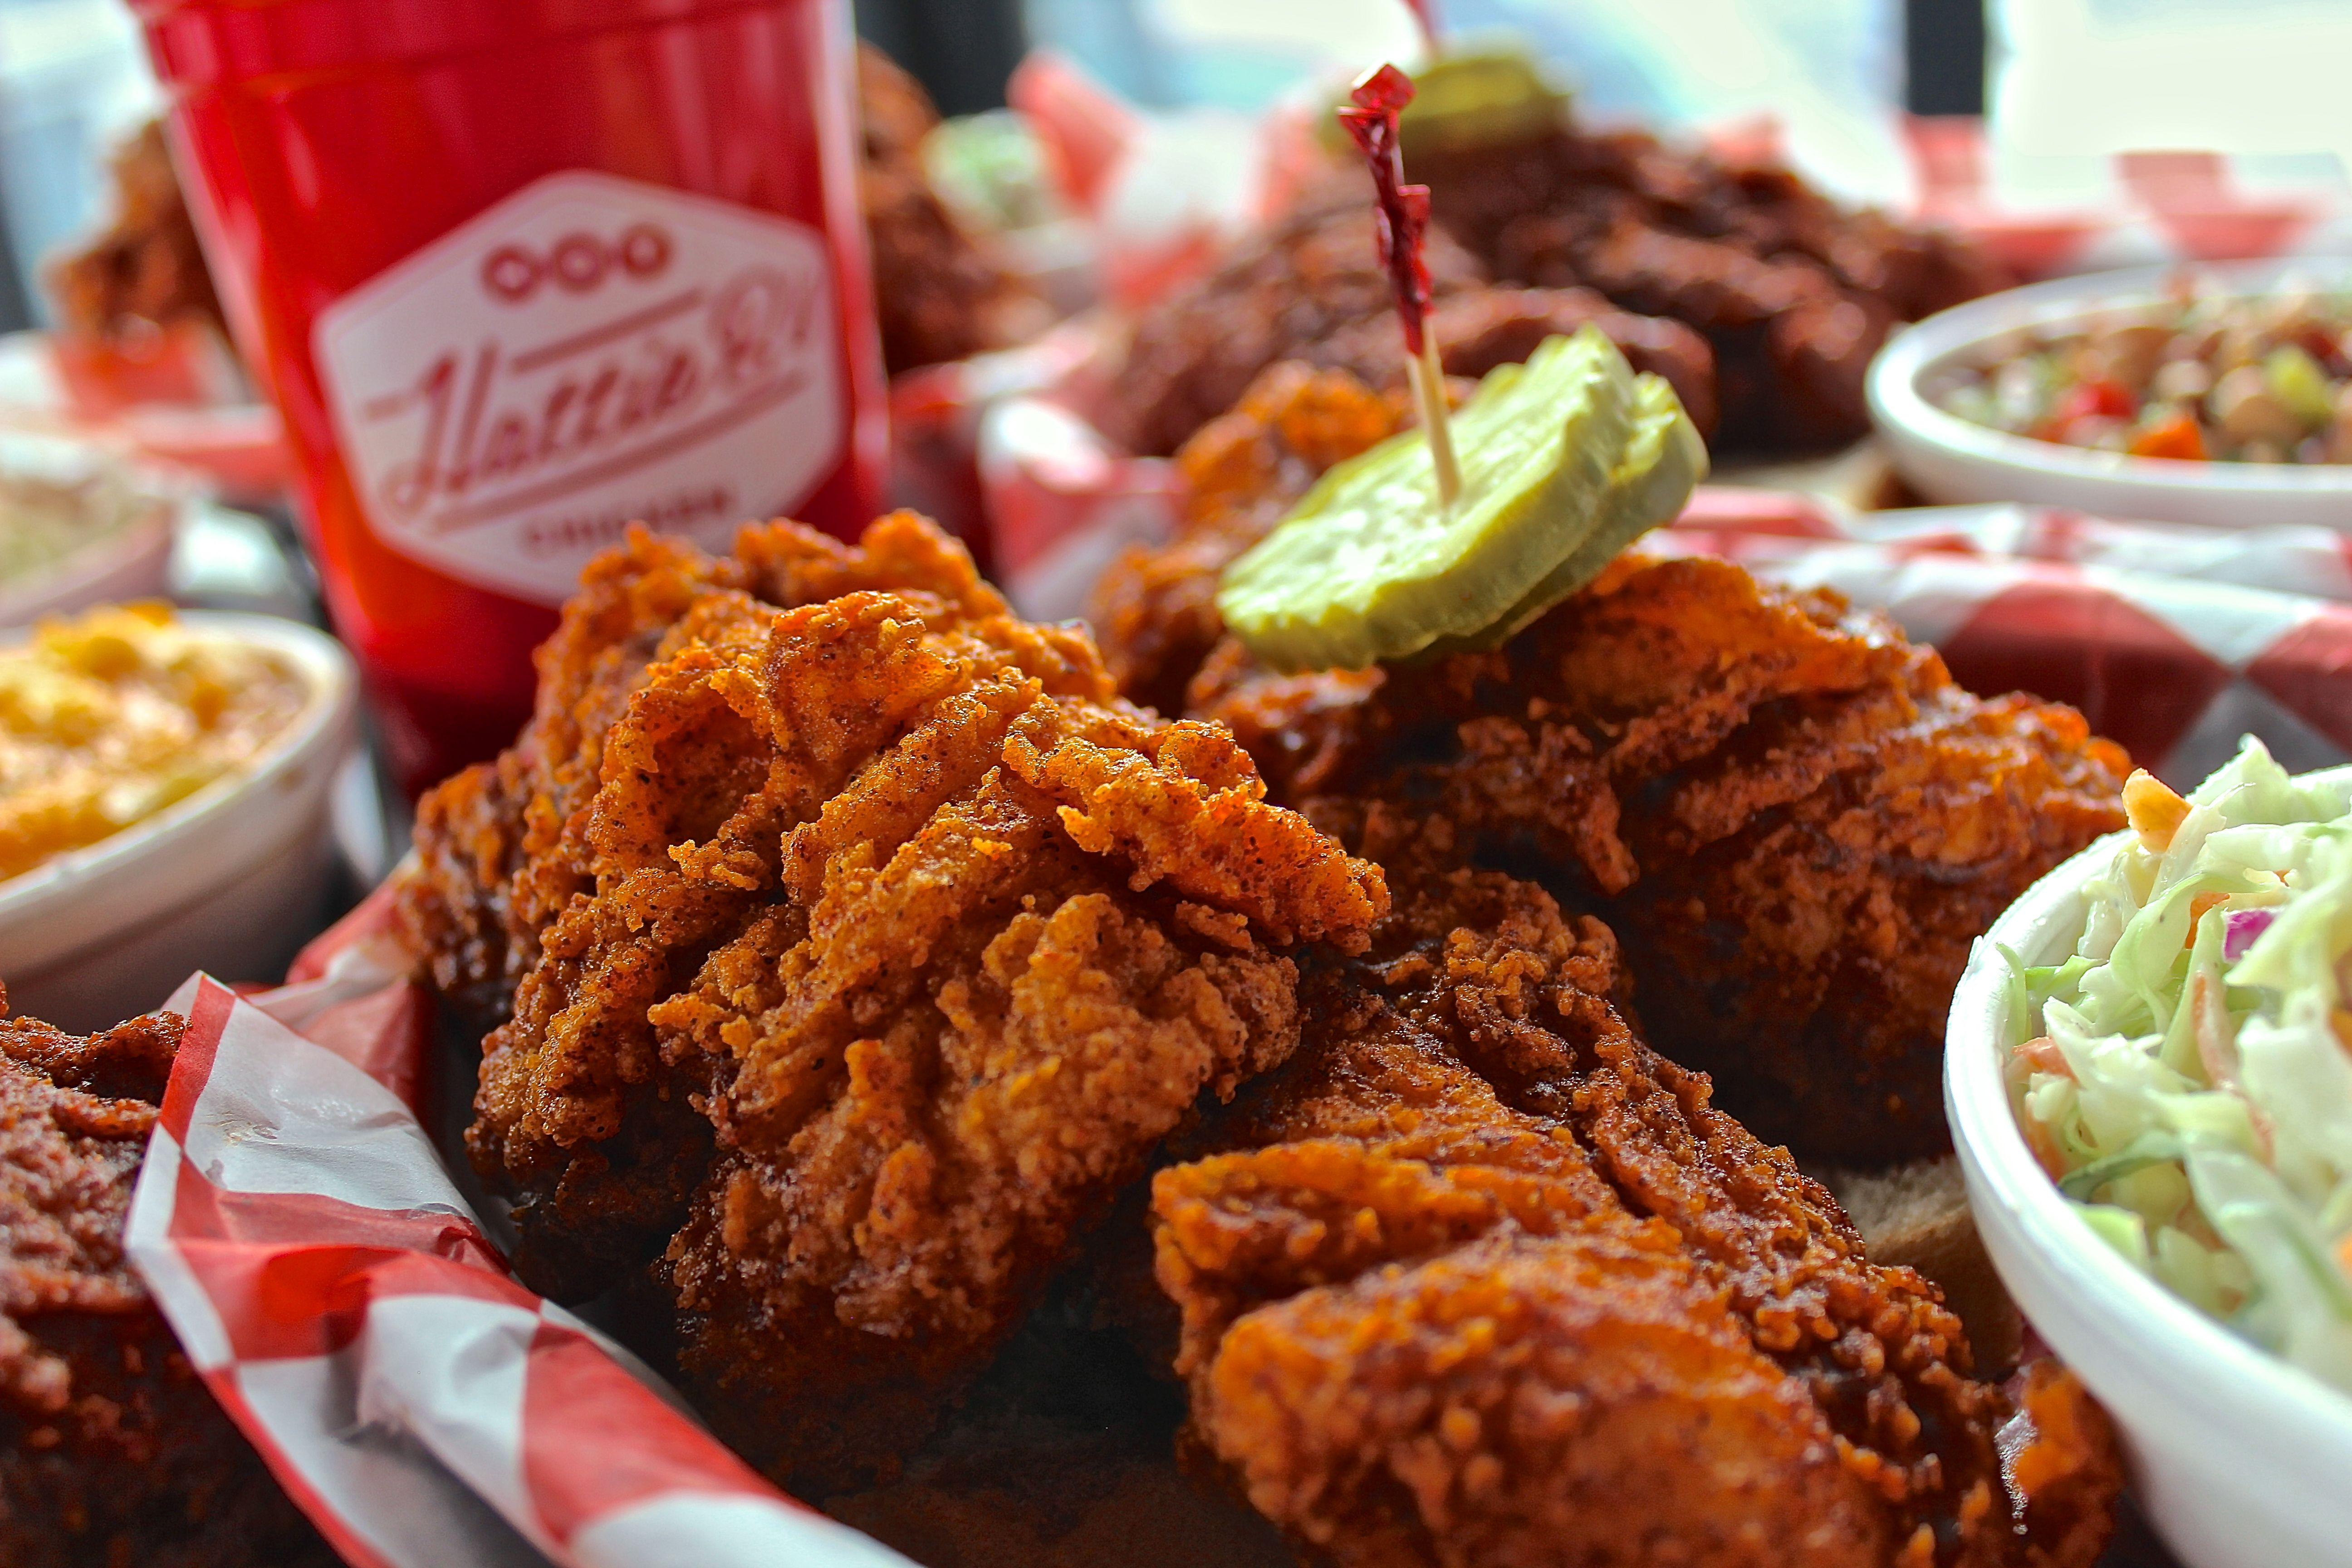 a plate of hot Nashville-style chicken served on red and white checkered paper, with pickles and cole slaw.